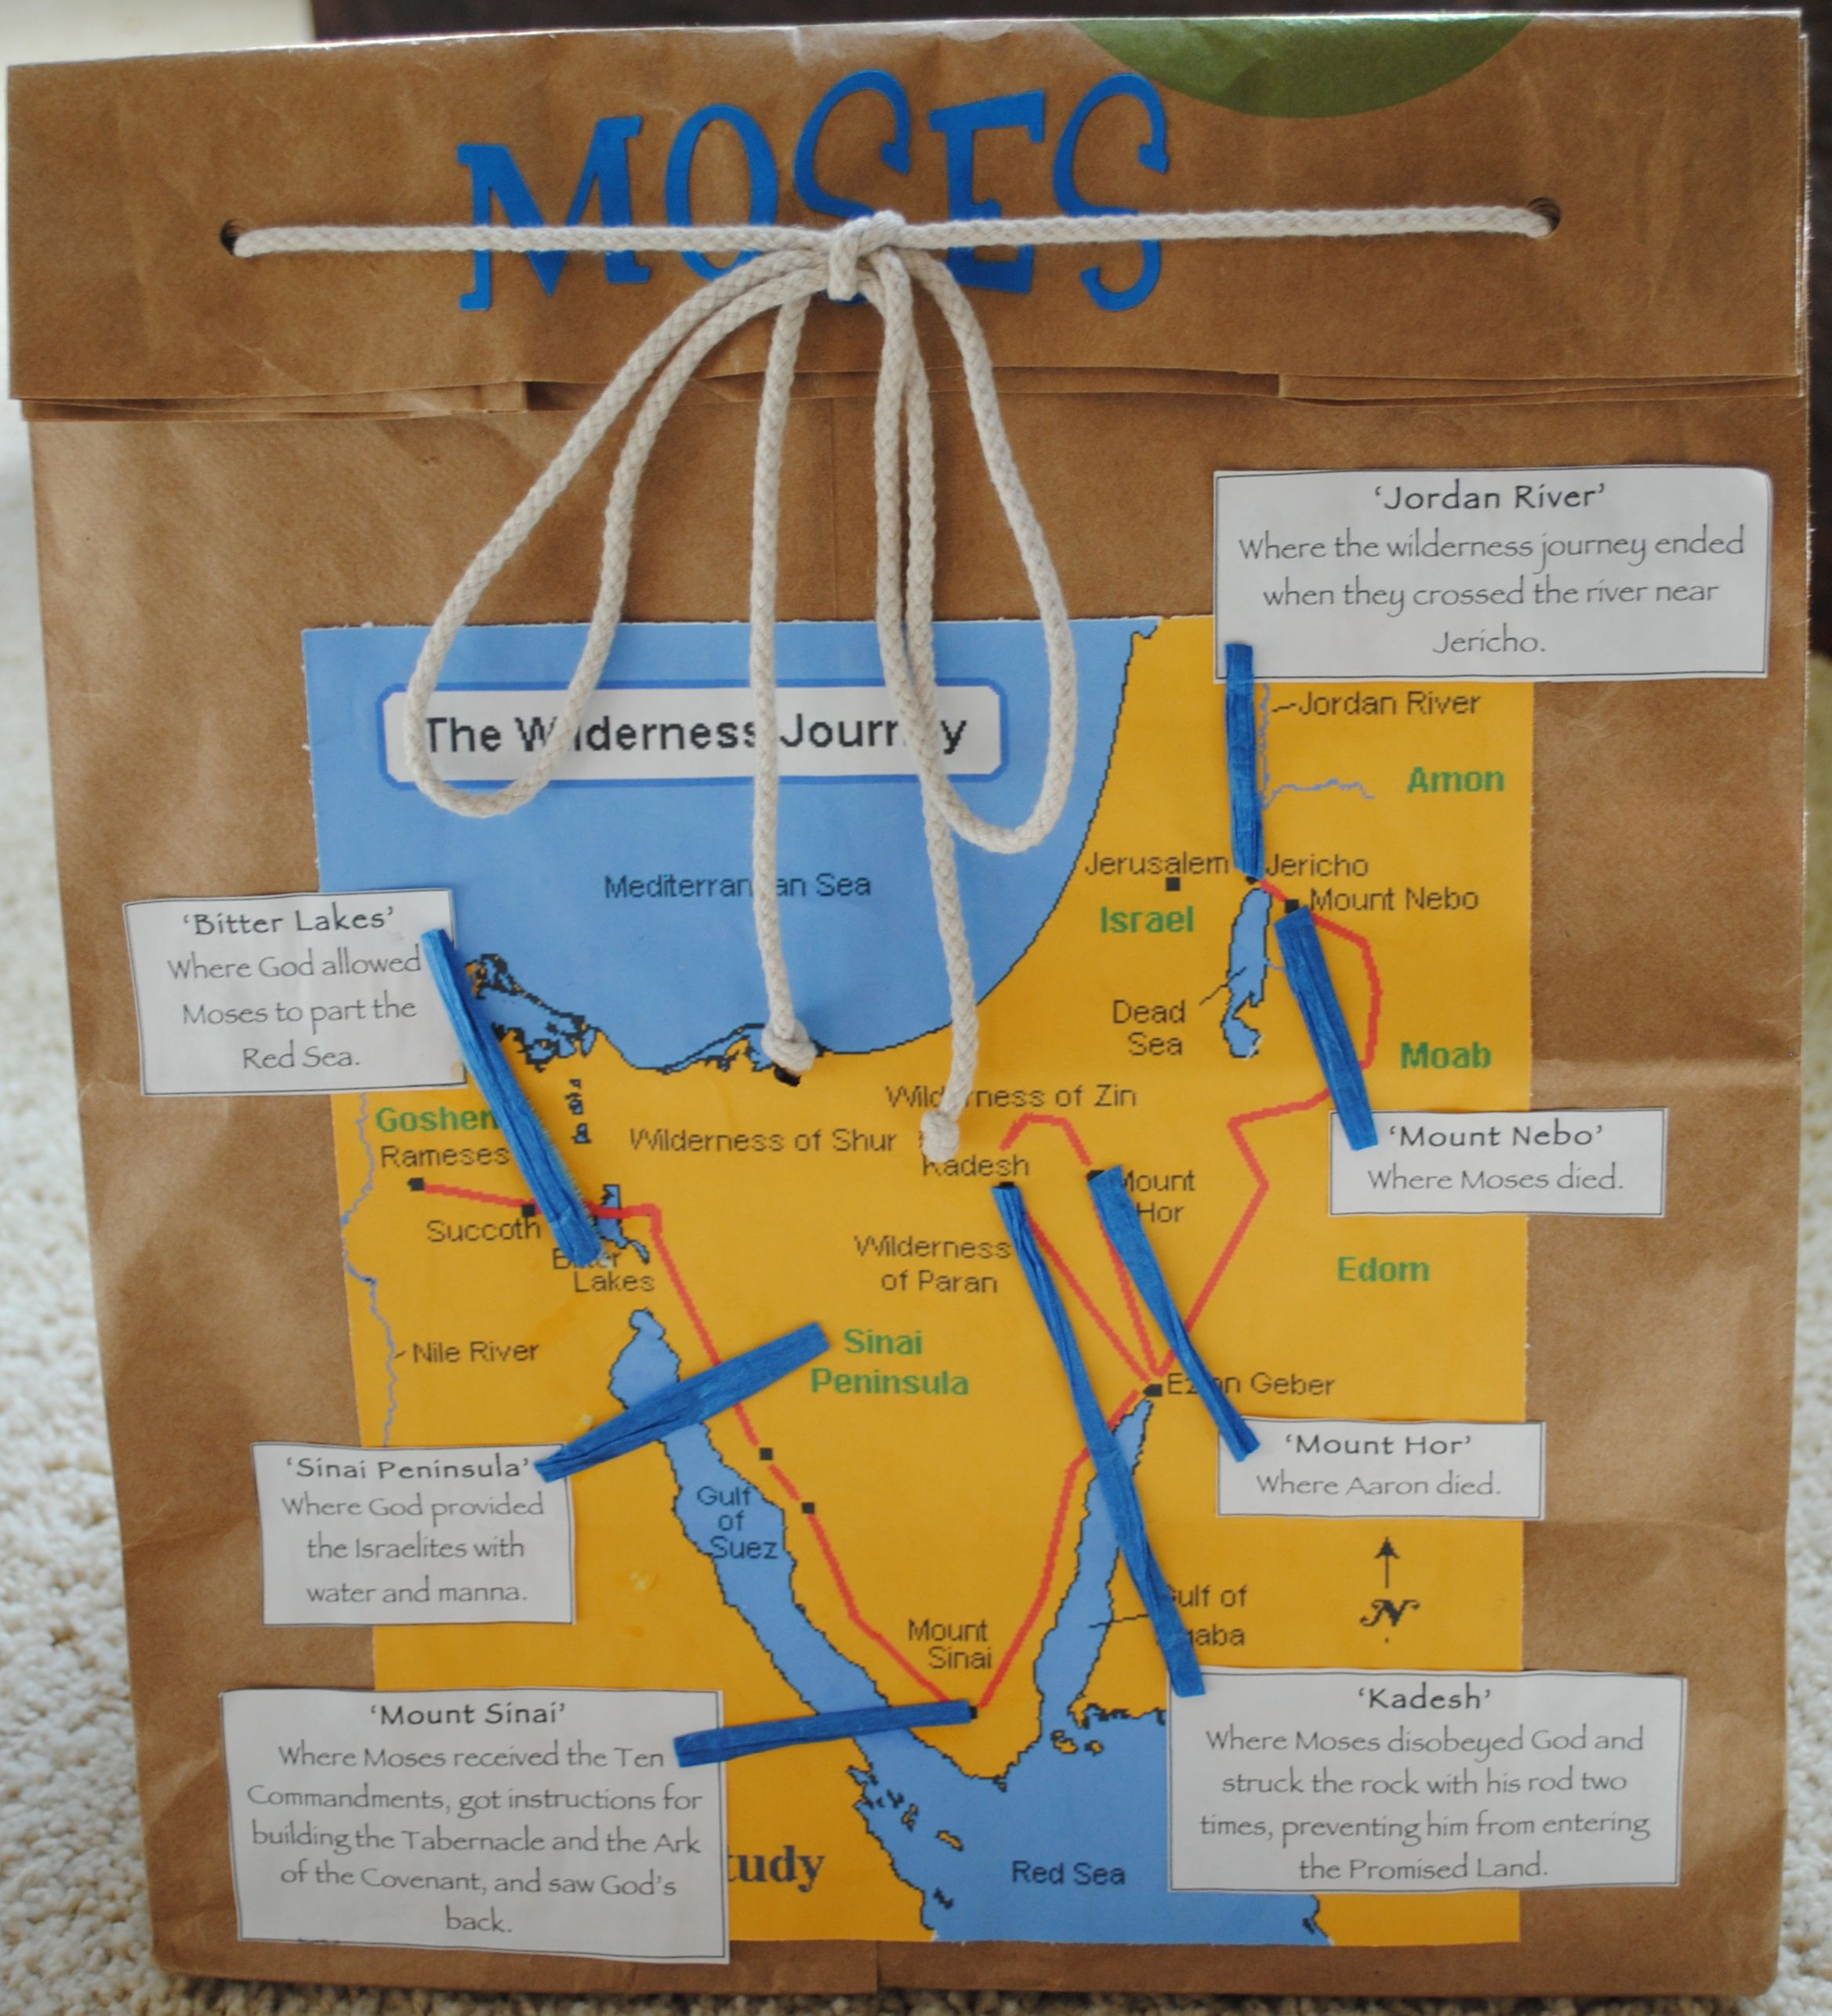 01 backpack the israelites journeyed through the wilderness for